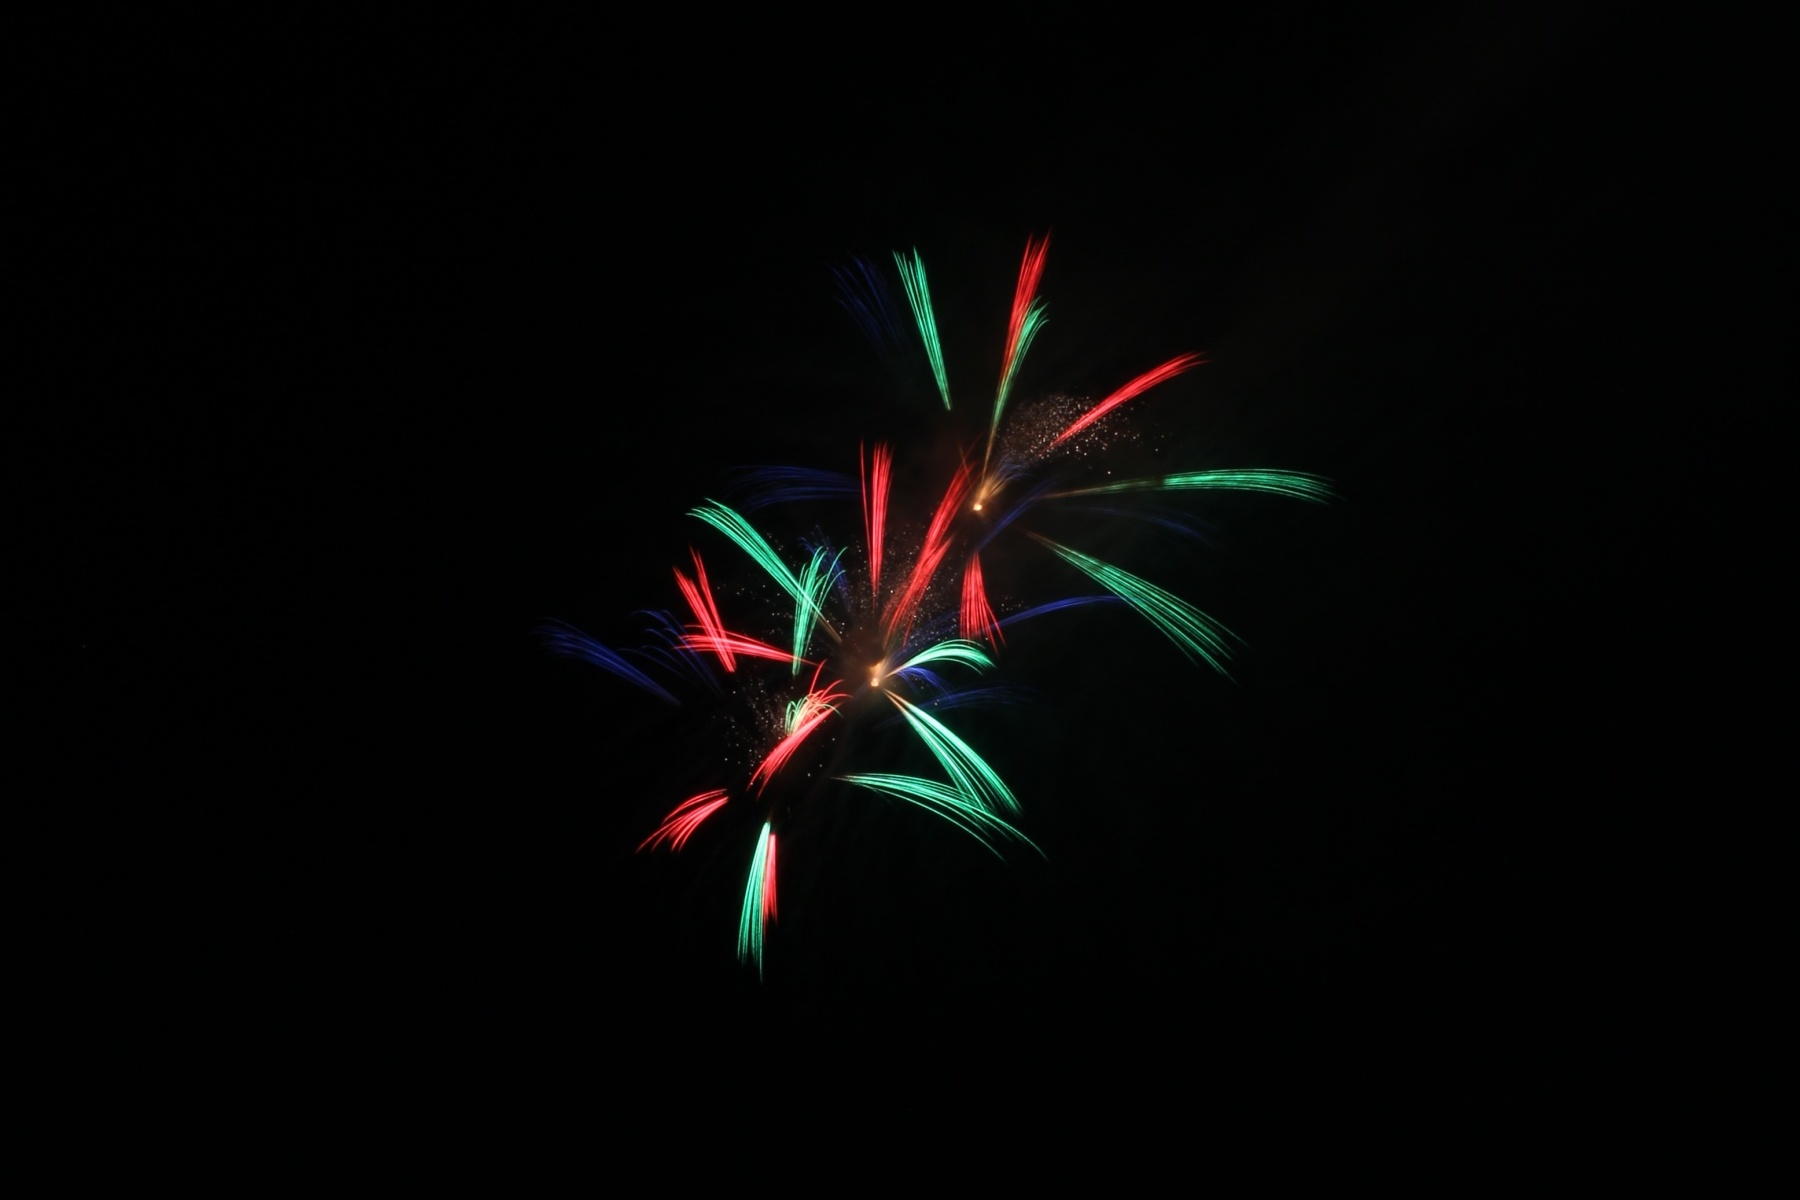 green red and blue star shaped fireworks